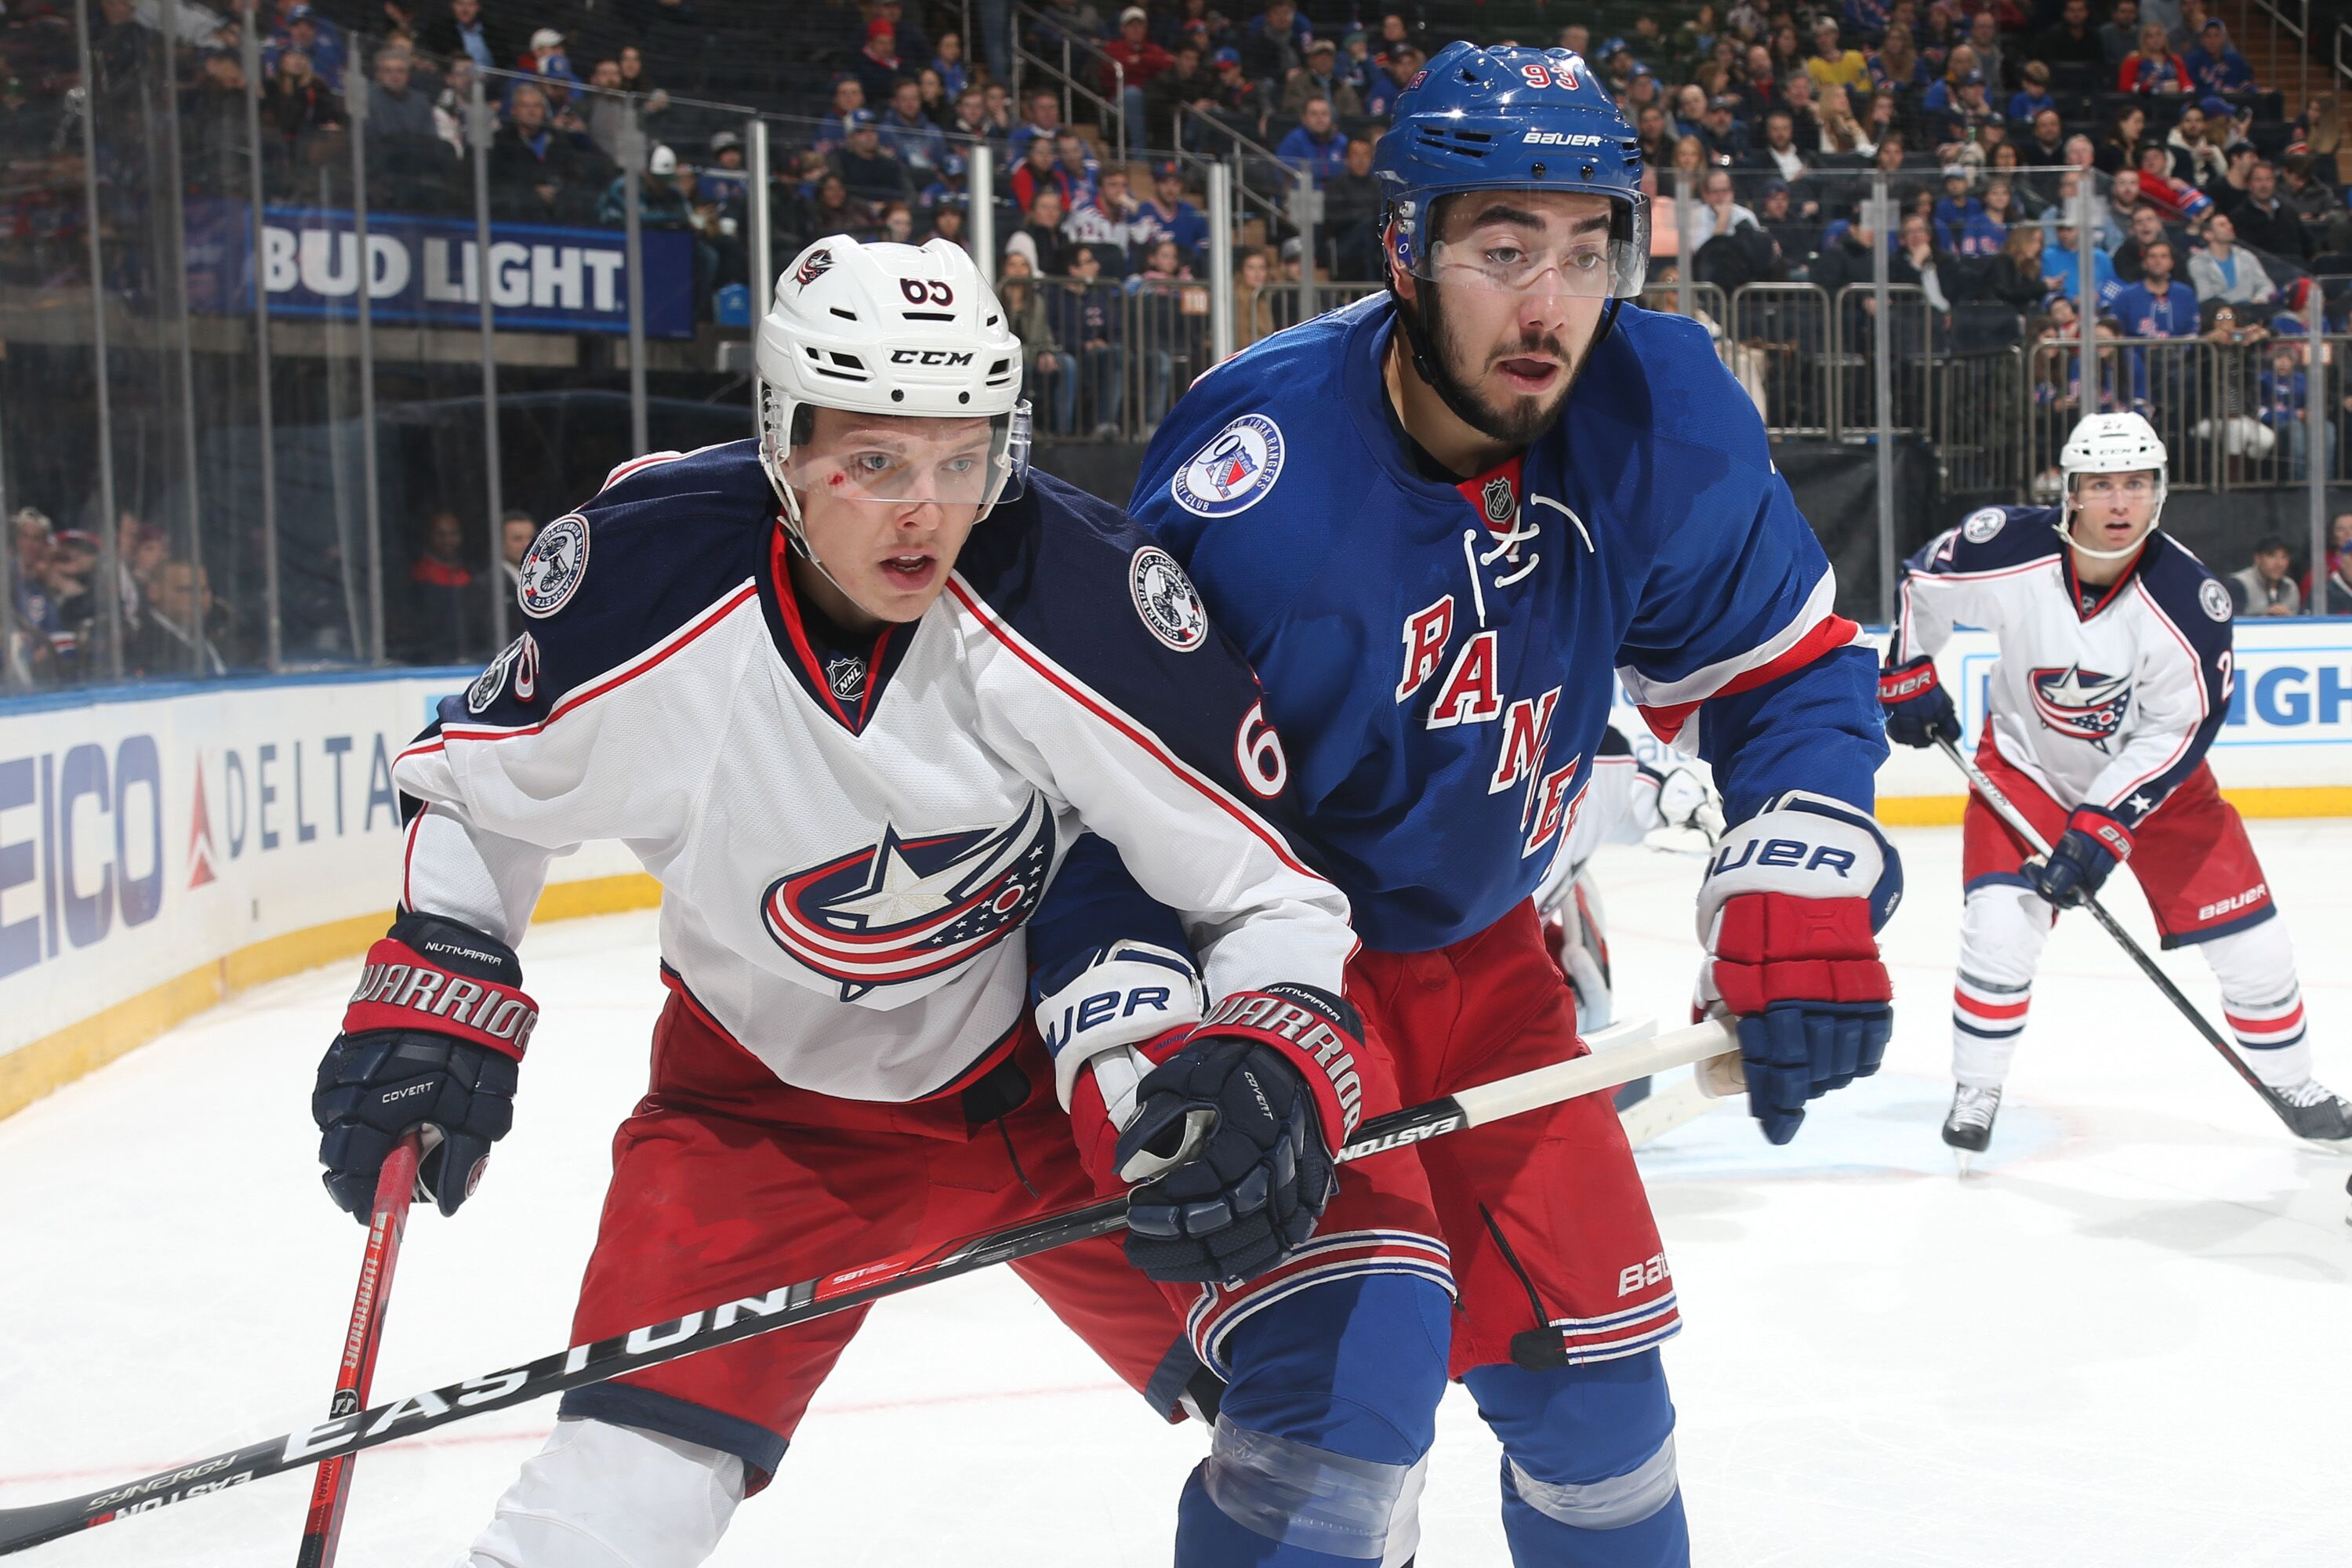 New York Rangers Preview: A Friday night battle with the Blue Jackets